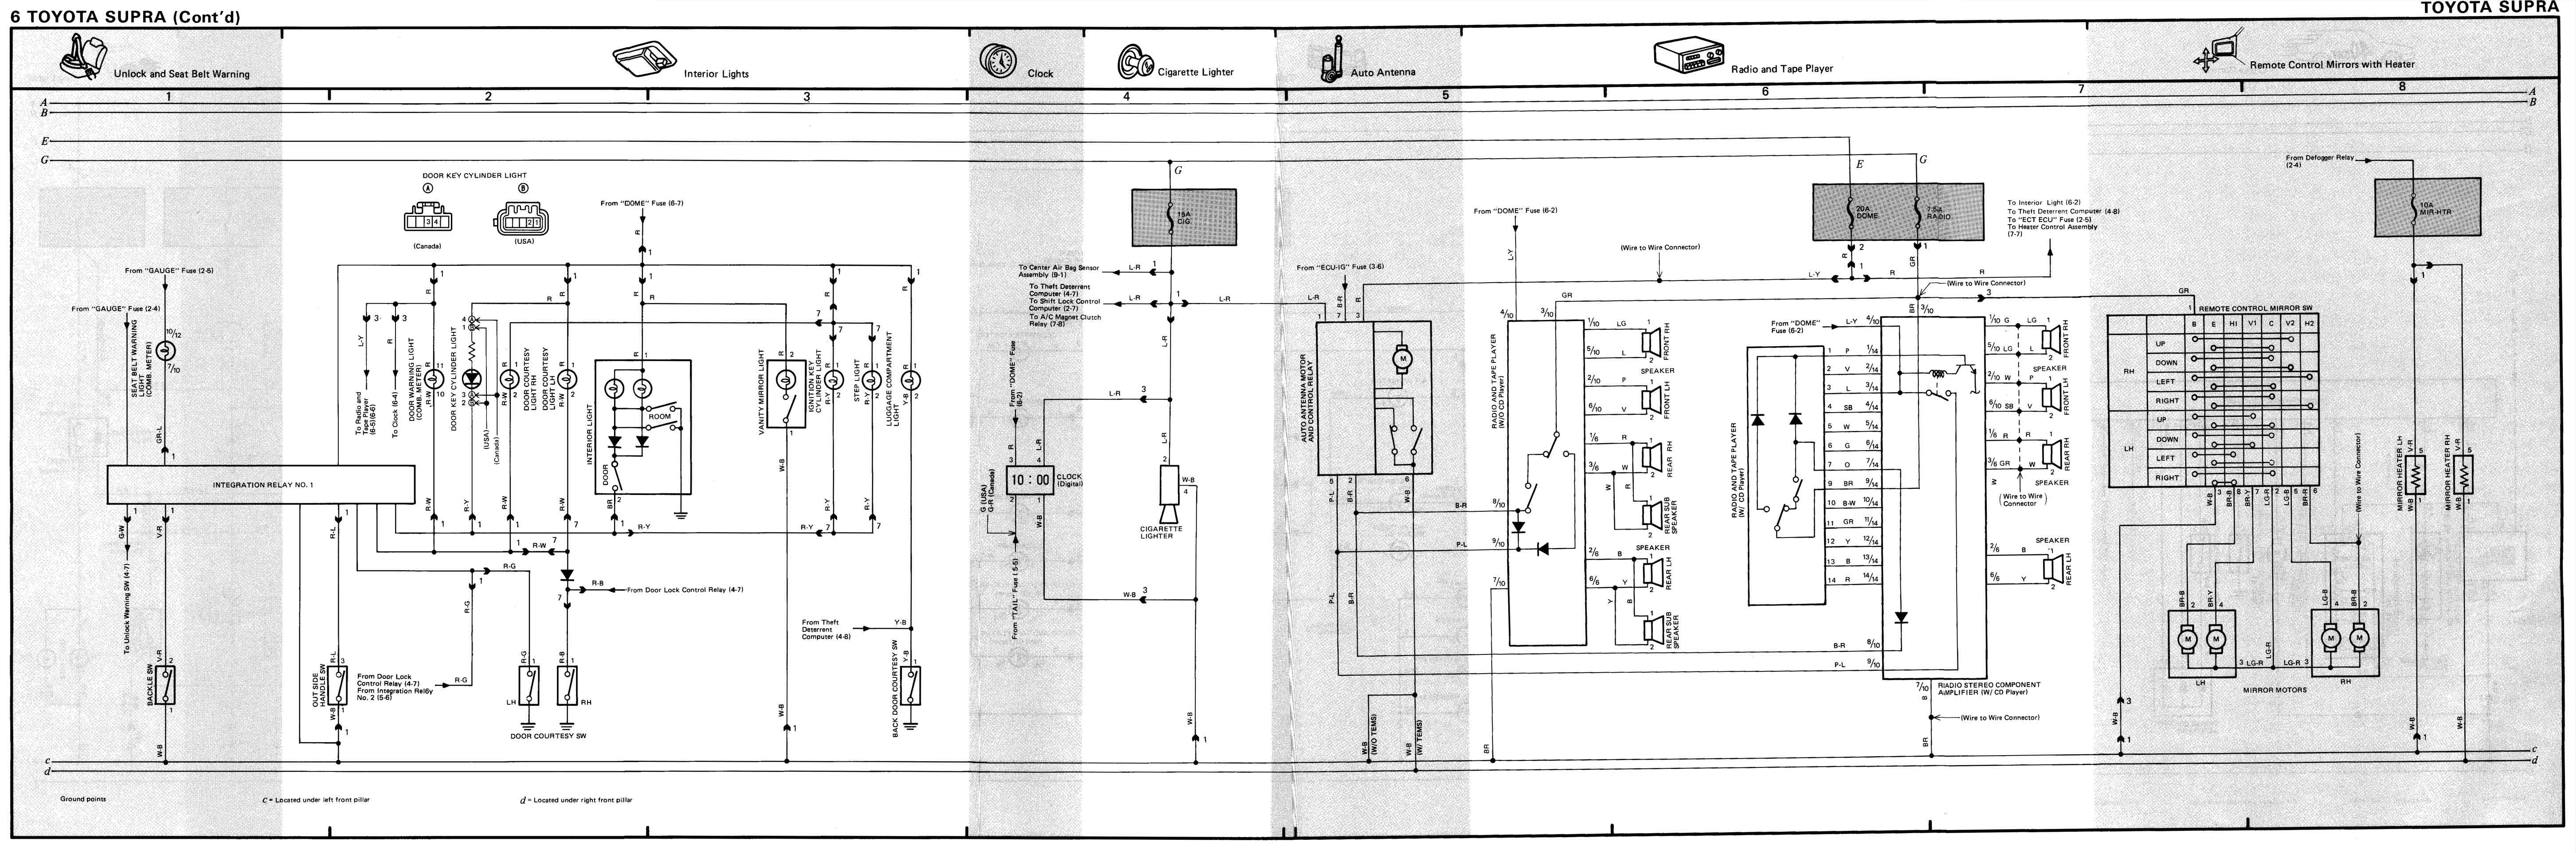 Amazing toyota antenna wiring diagram contemporary electrical wiring diagram alarm mobil avanza love wiring diagram ideas asfbconference2016 Gallery